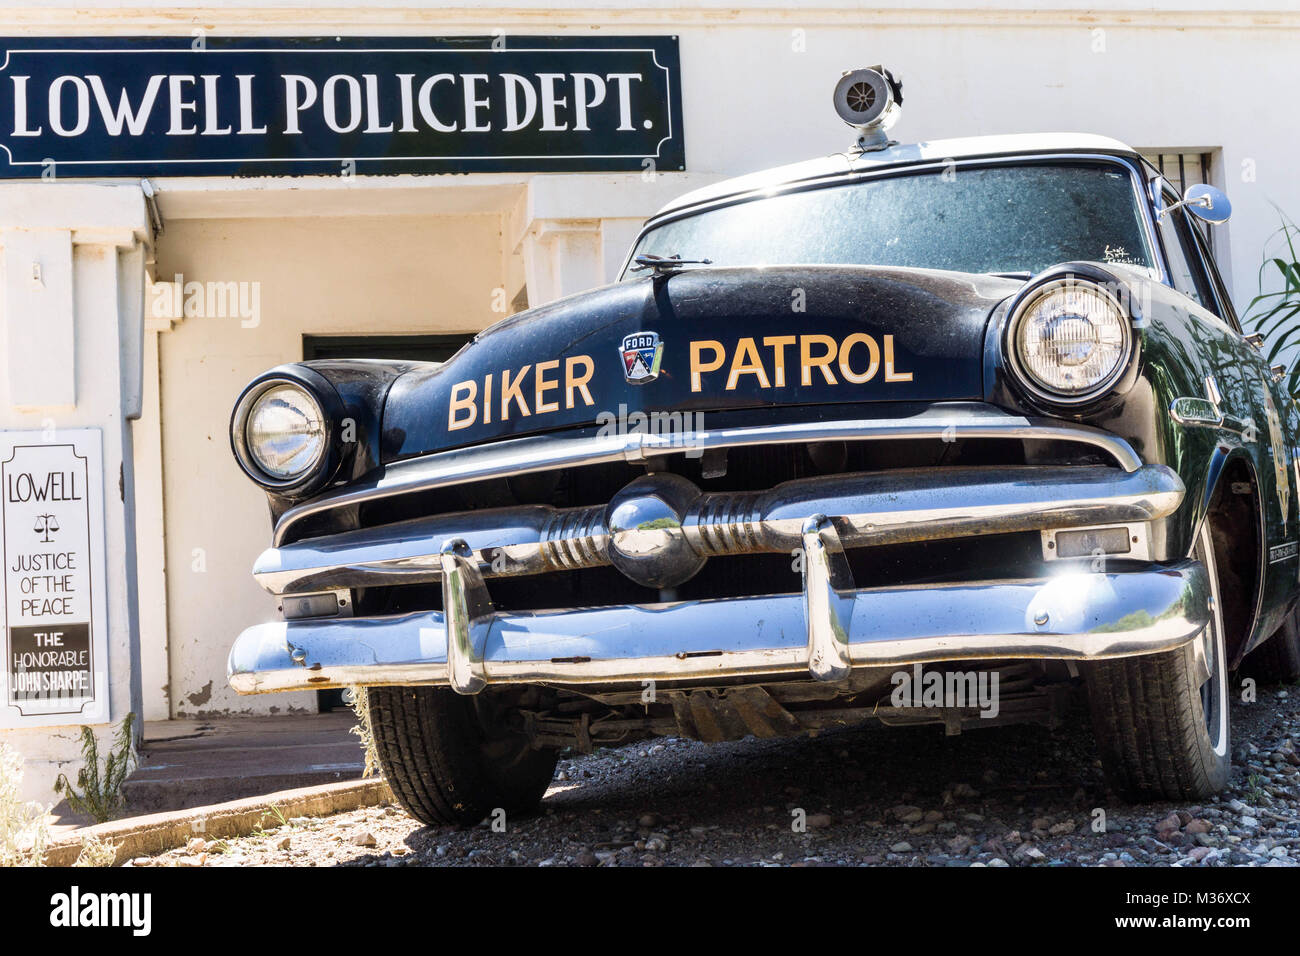 classic police patrol car and police station in southeastern